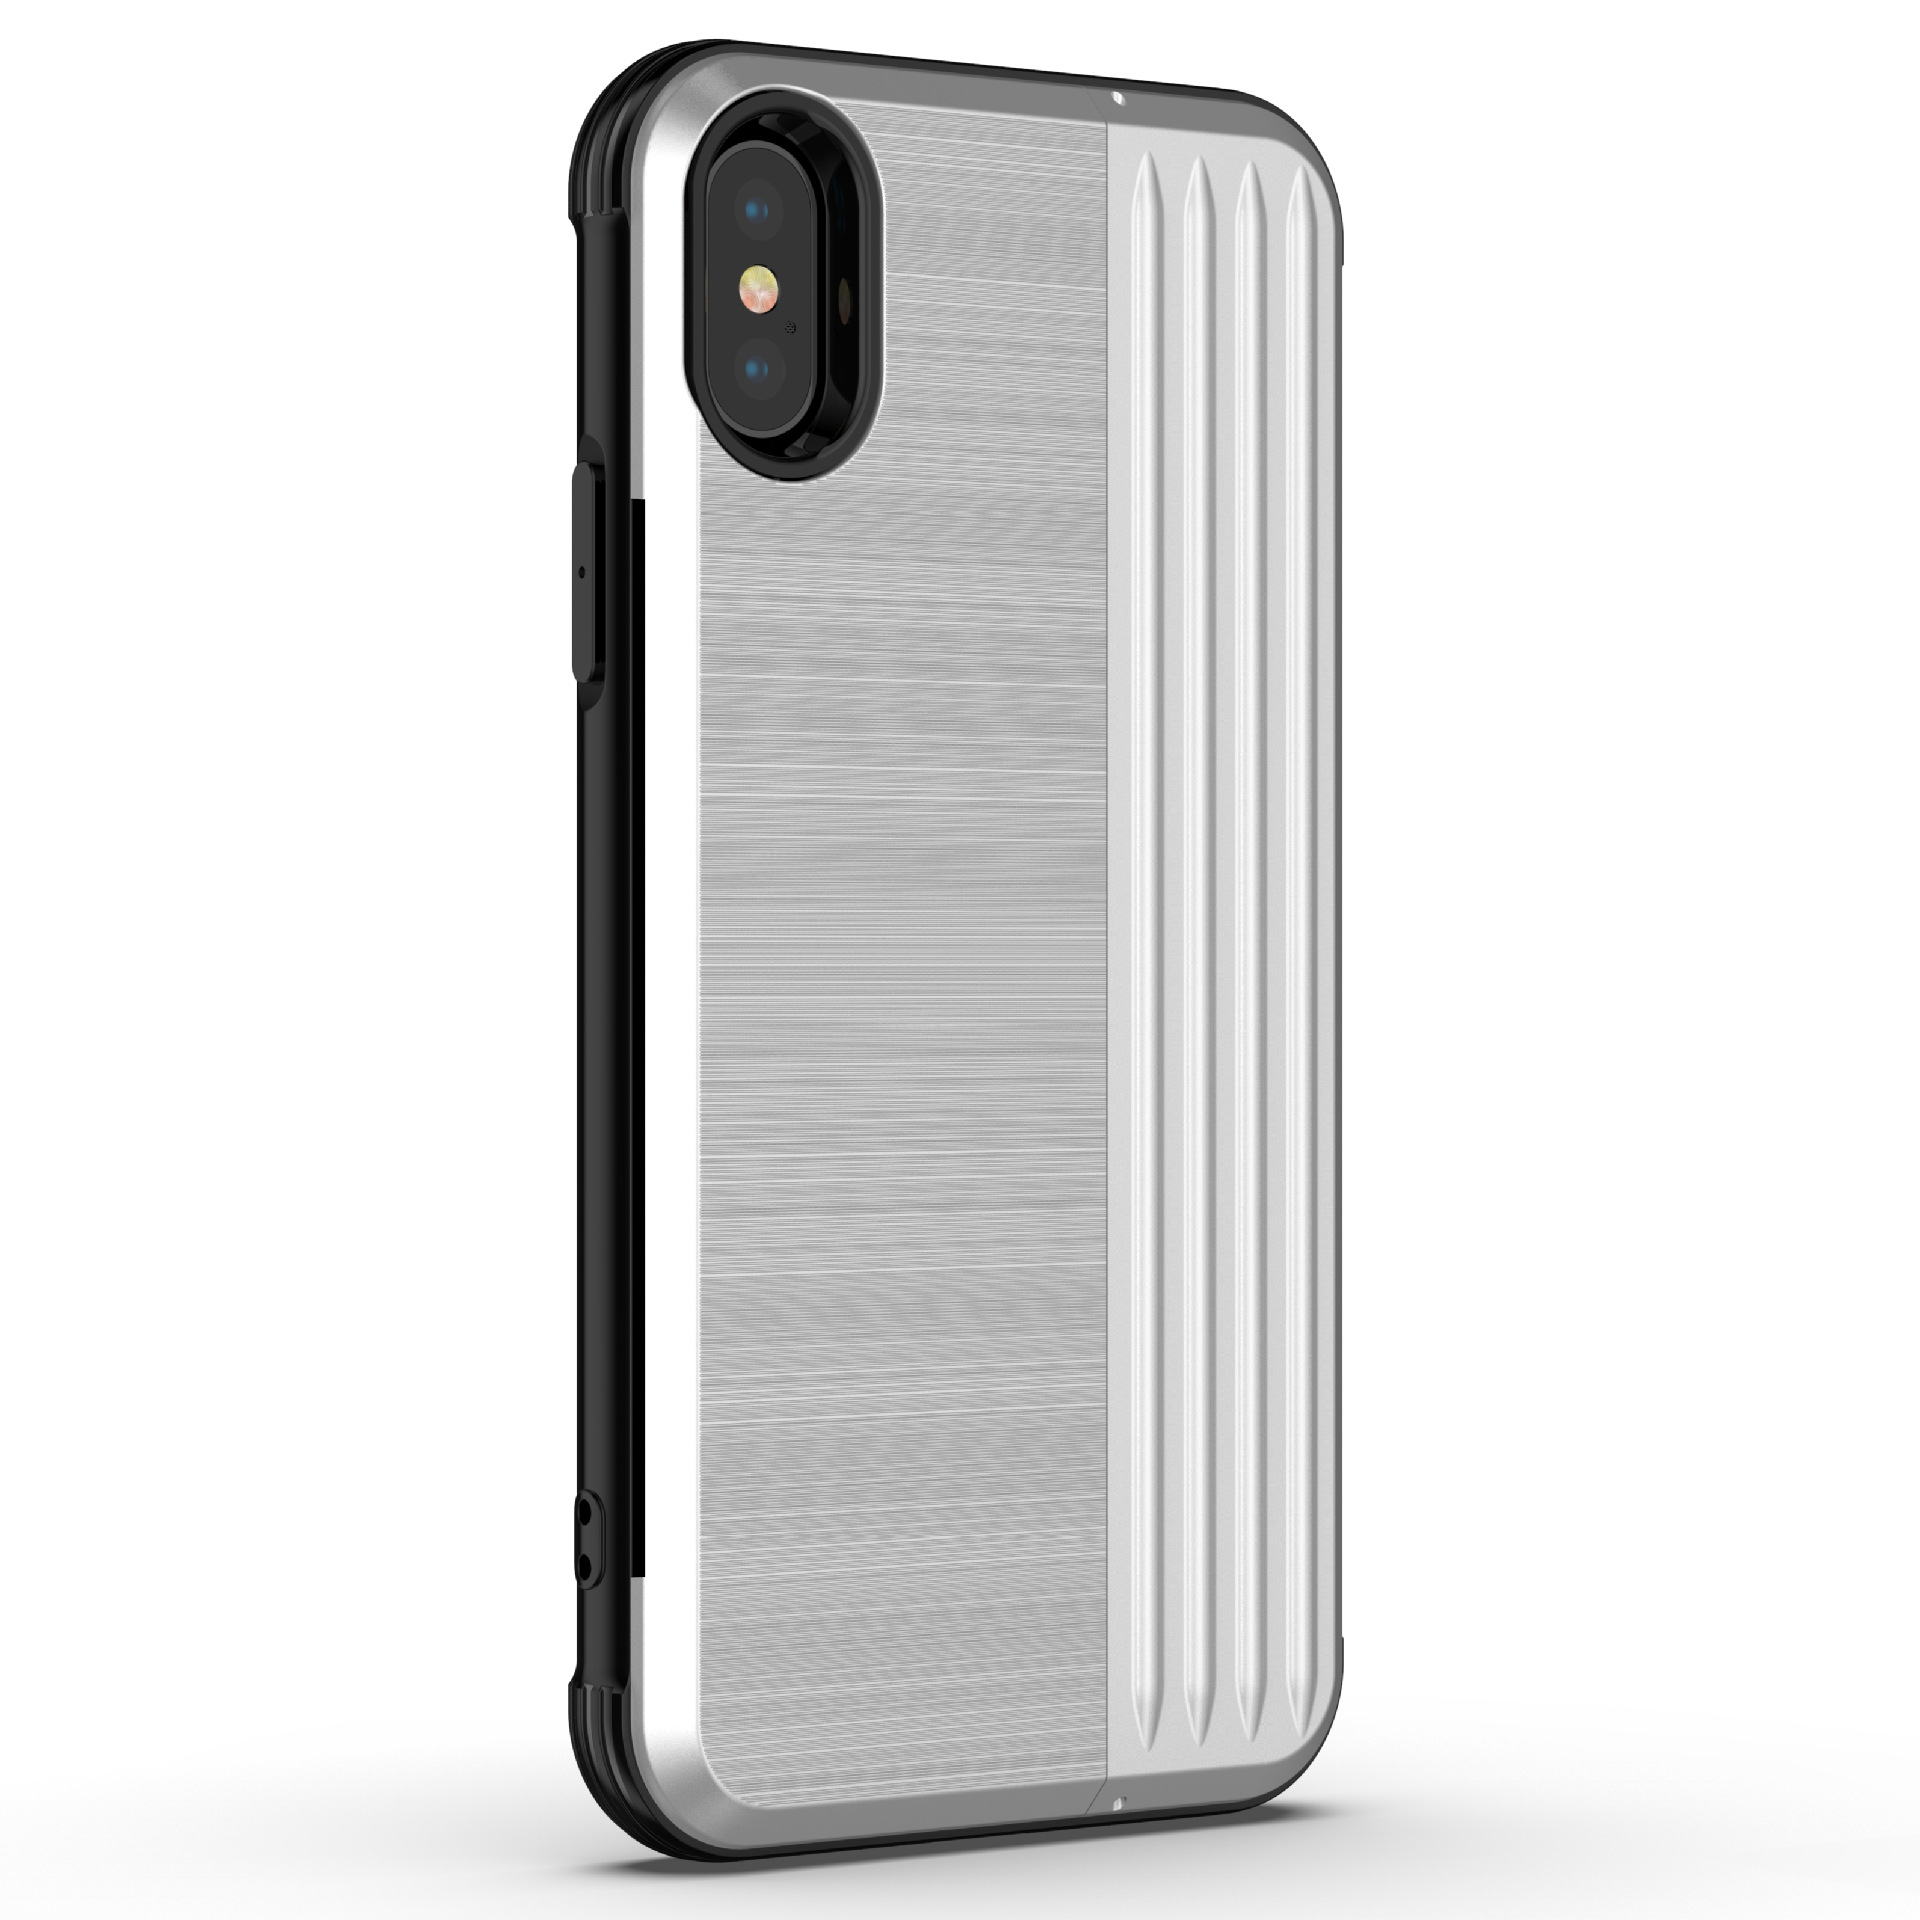 Scratchproof Tpu PC Card Slot Mobile Phone Case Cover for iPhone X XS Max